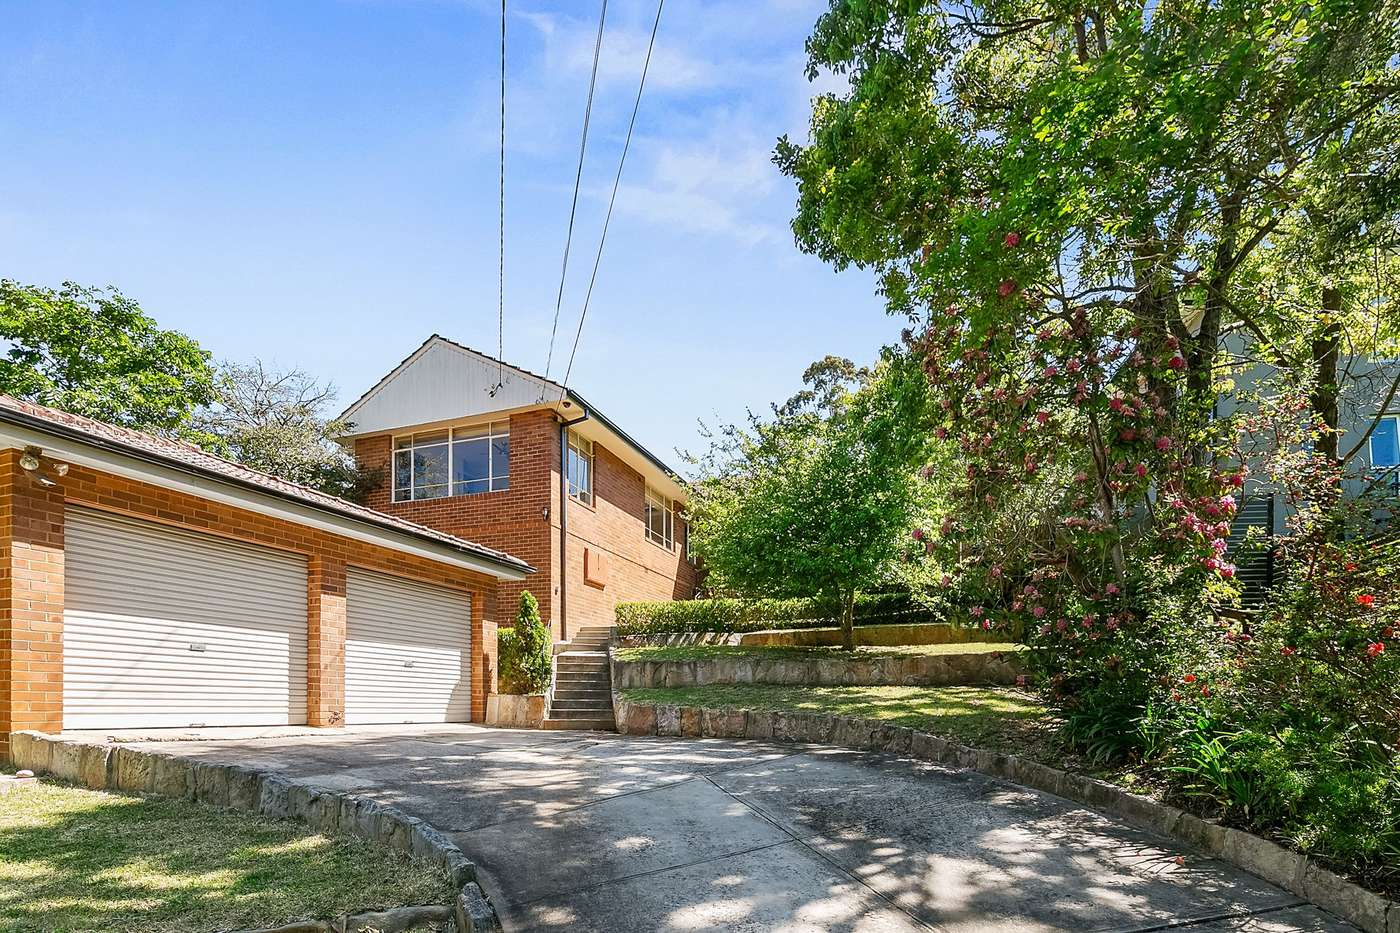 Main view of Homely house listing, 9 Mycumbene Avenue, East Lindfield, NSW 2070